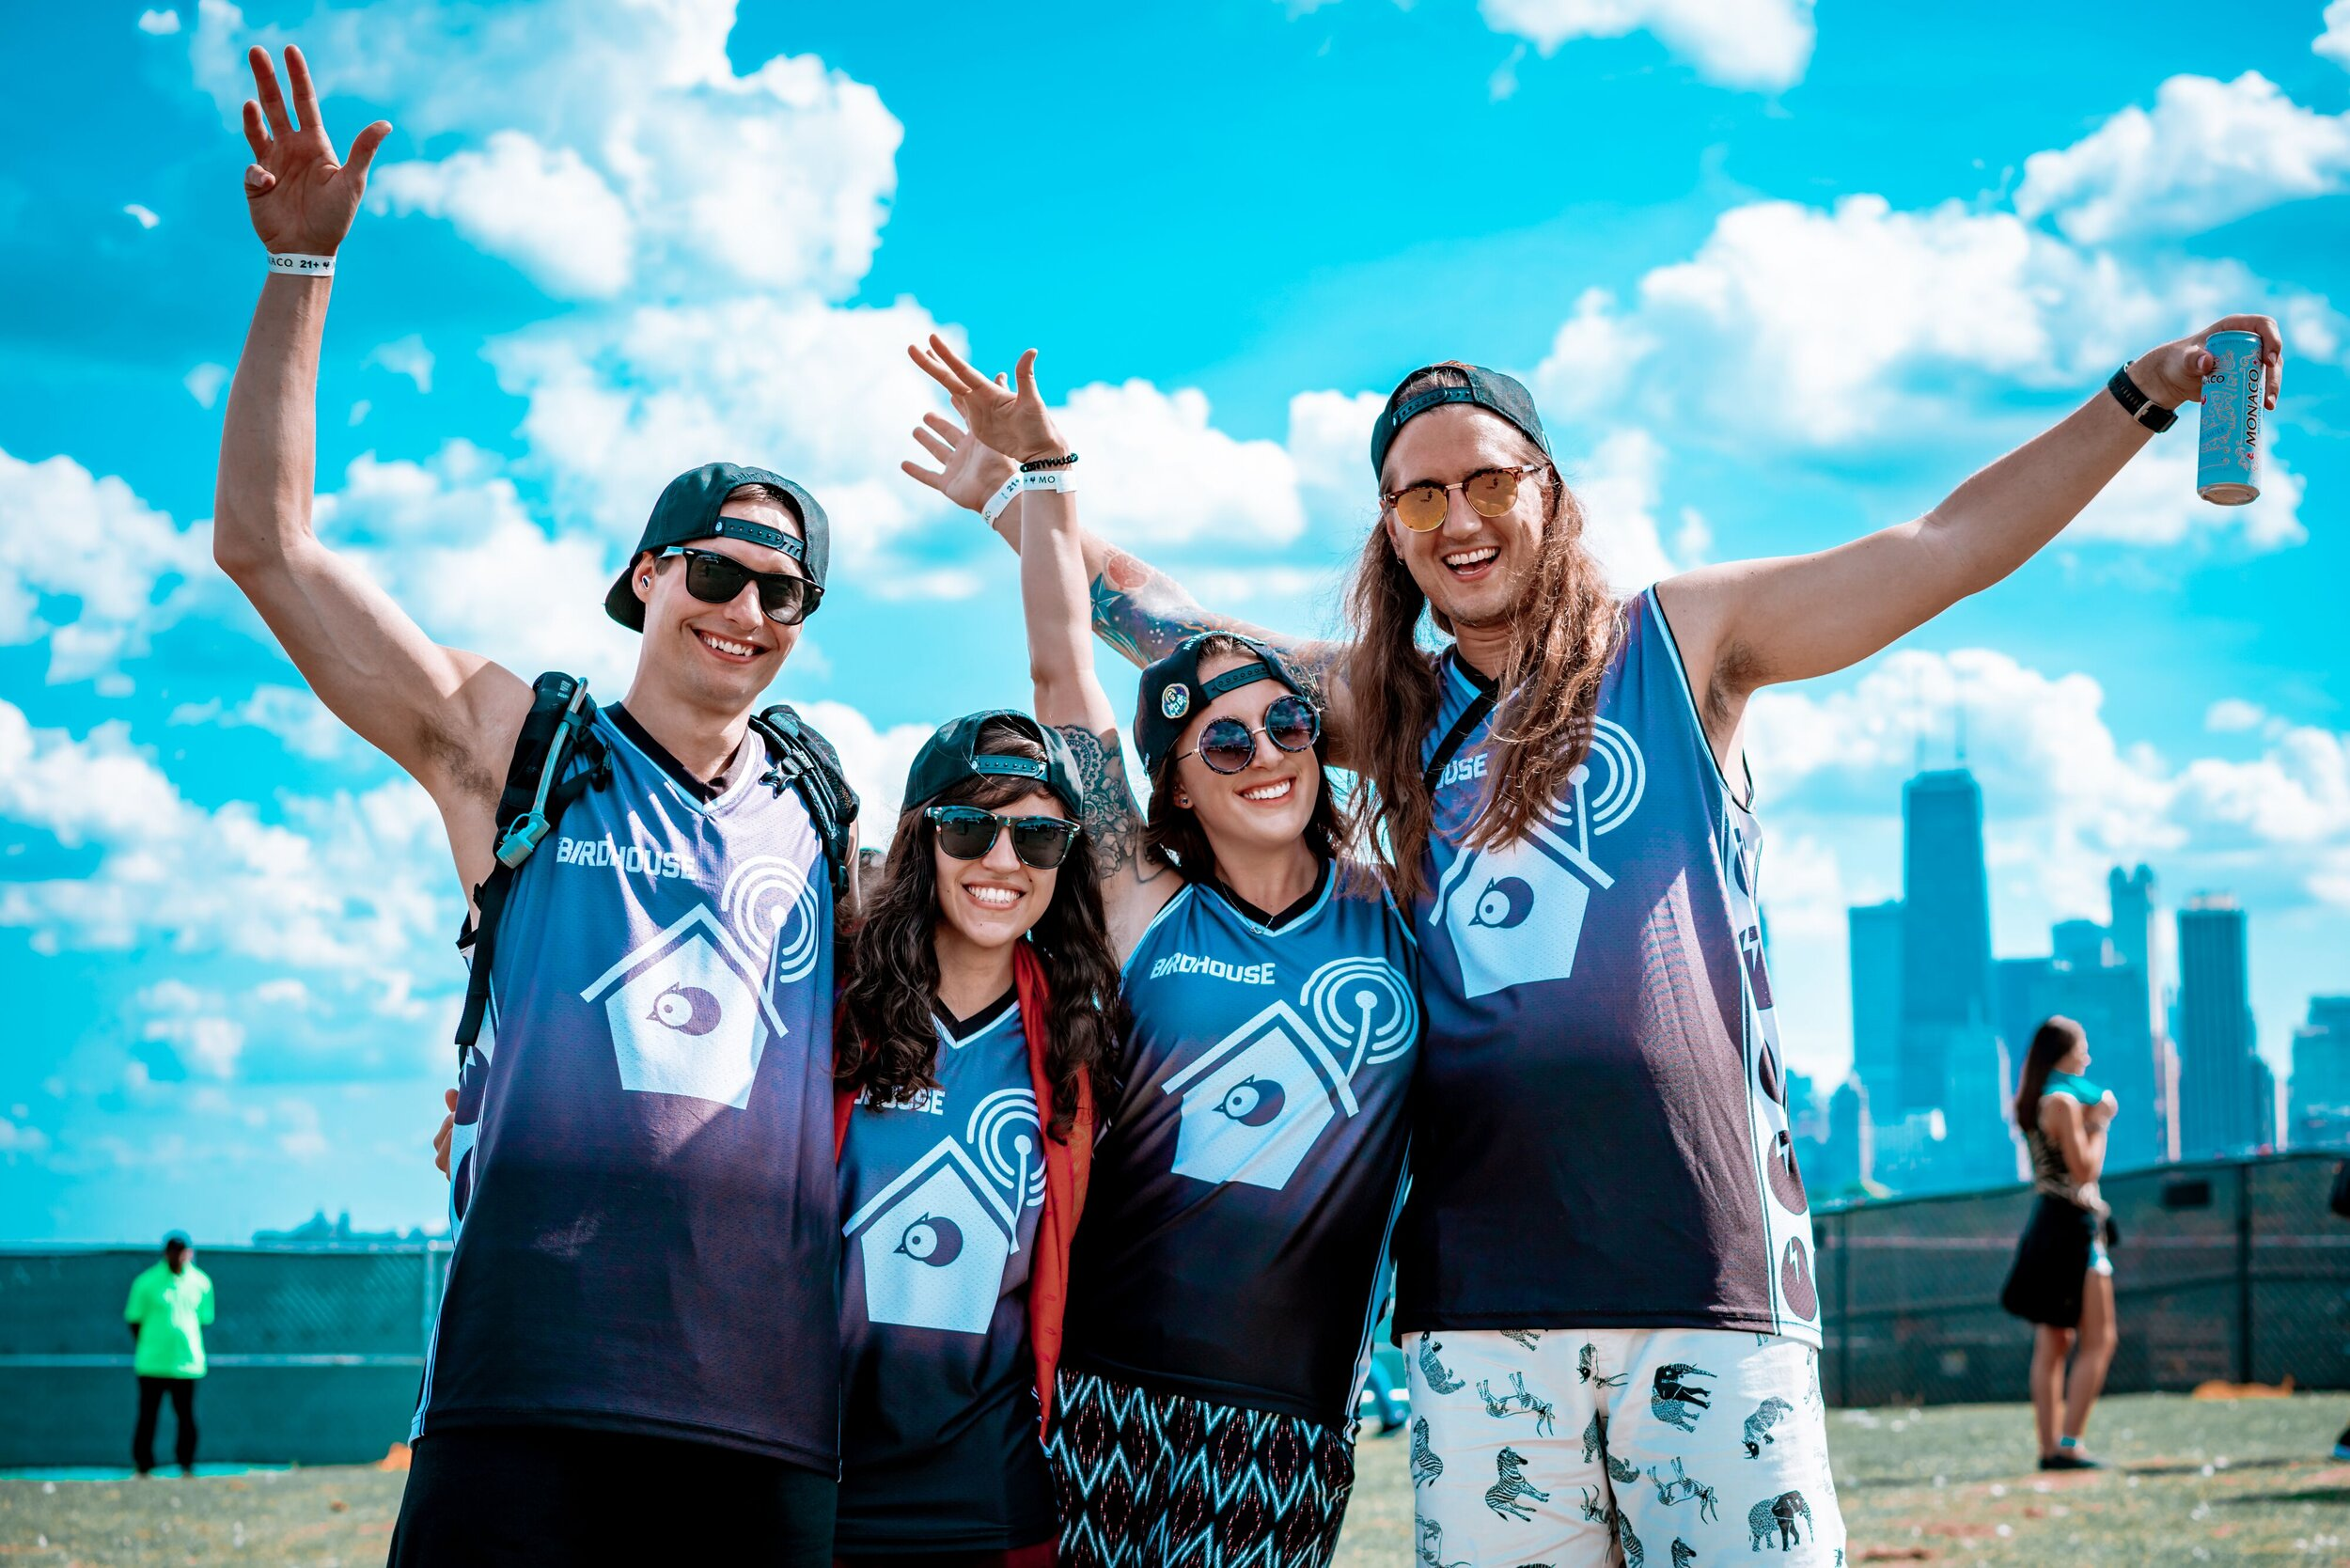 Patrons smile for a picture in their Birdhouse jerseys